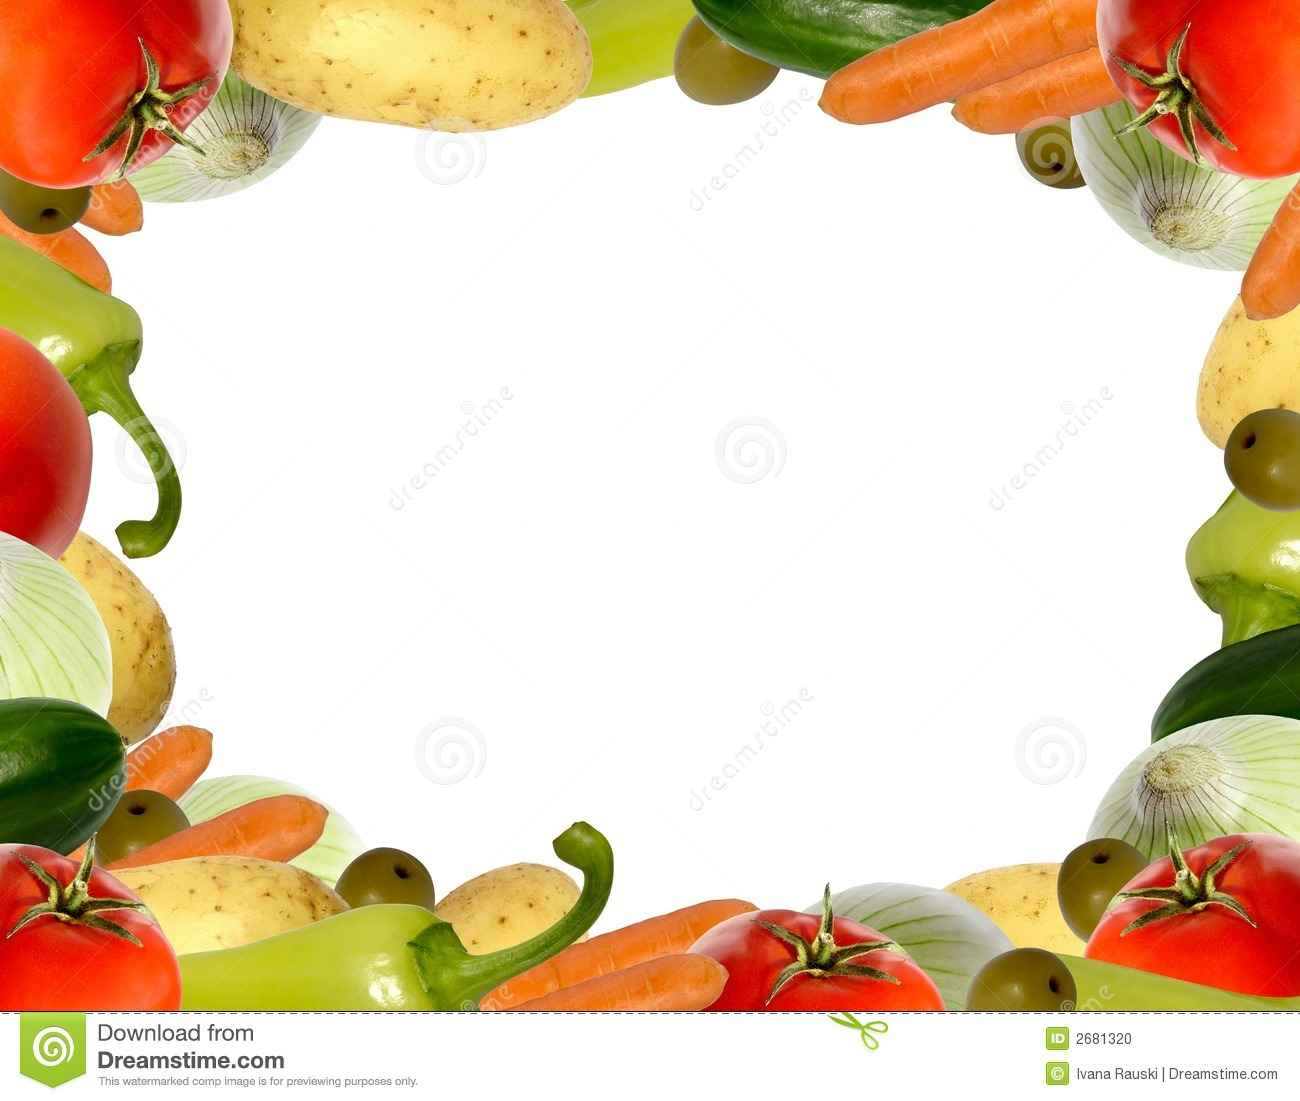 Background clipart vegetable garden #15